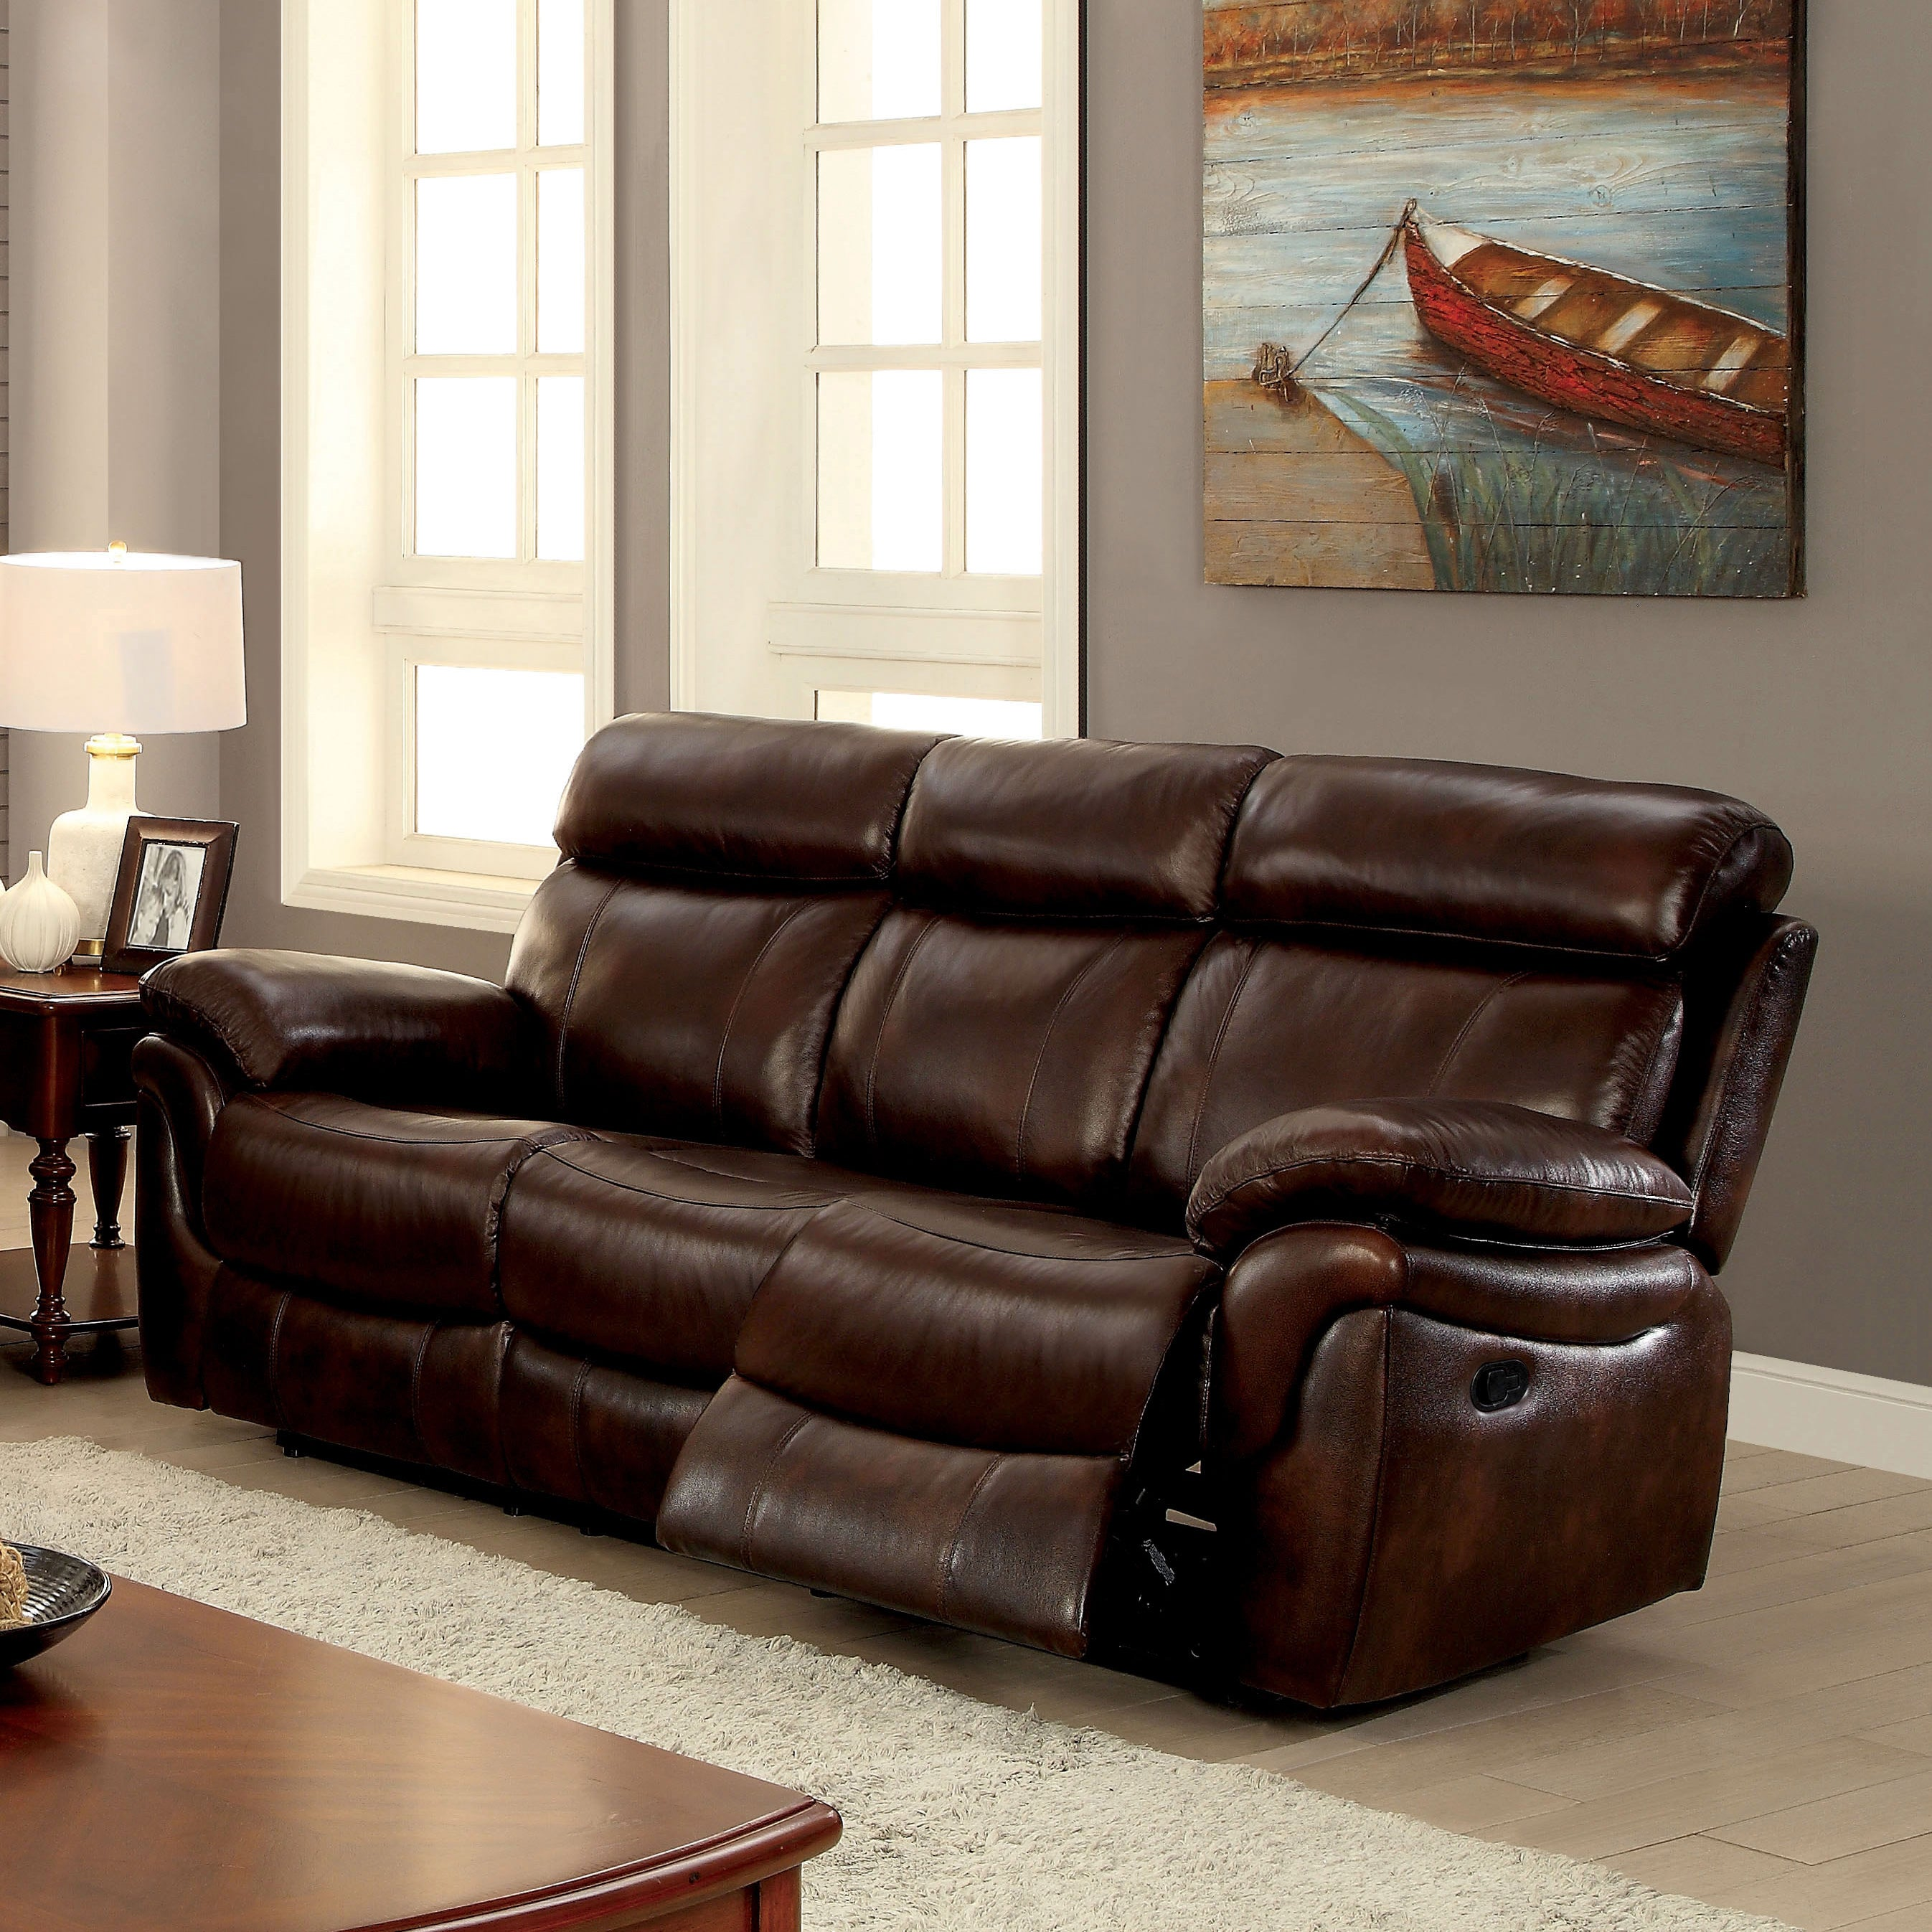 Furniture of America Hazen Brown Top Grain Leather Match ...